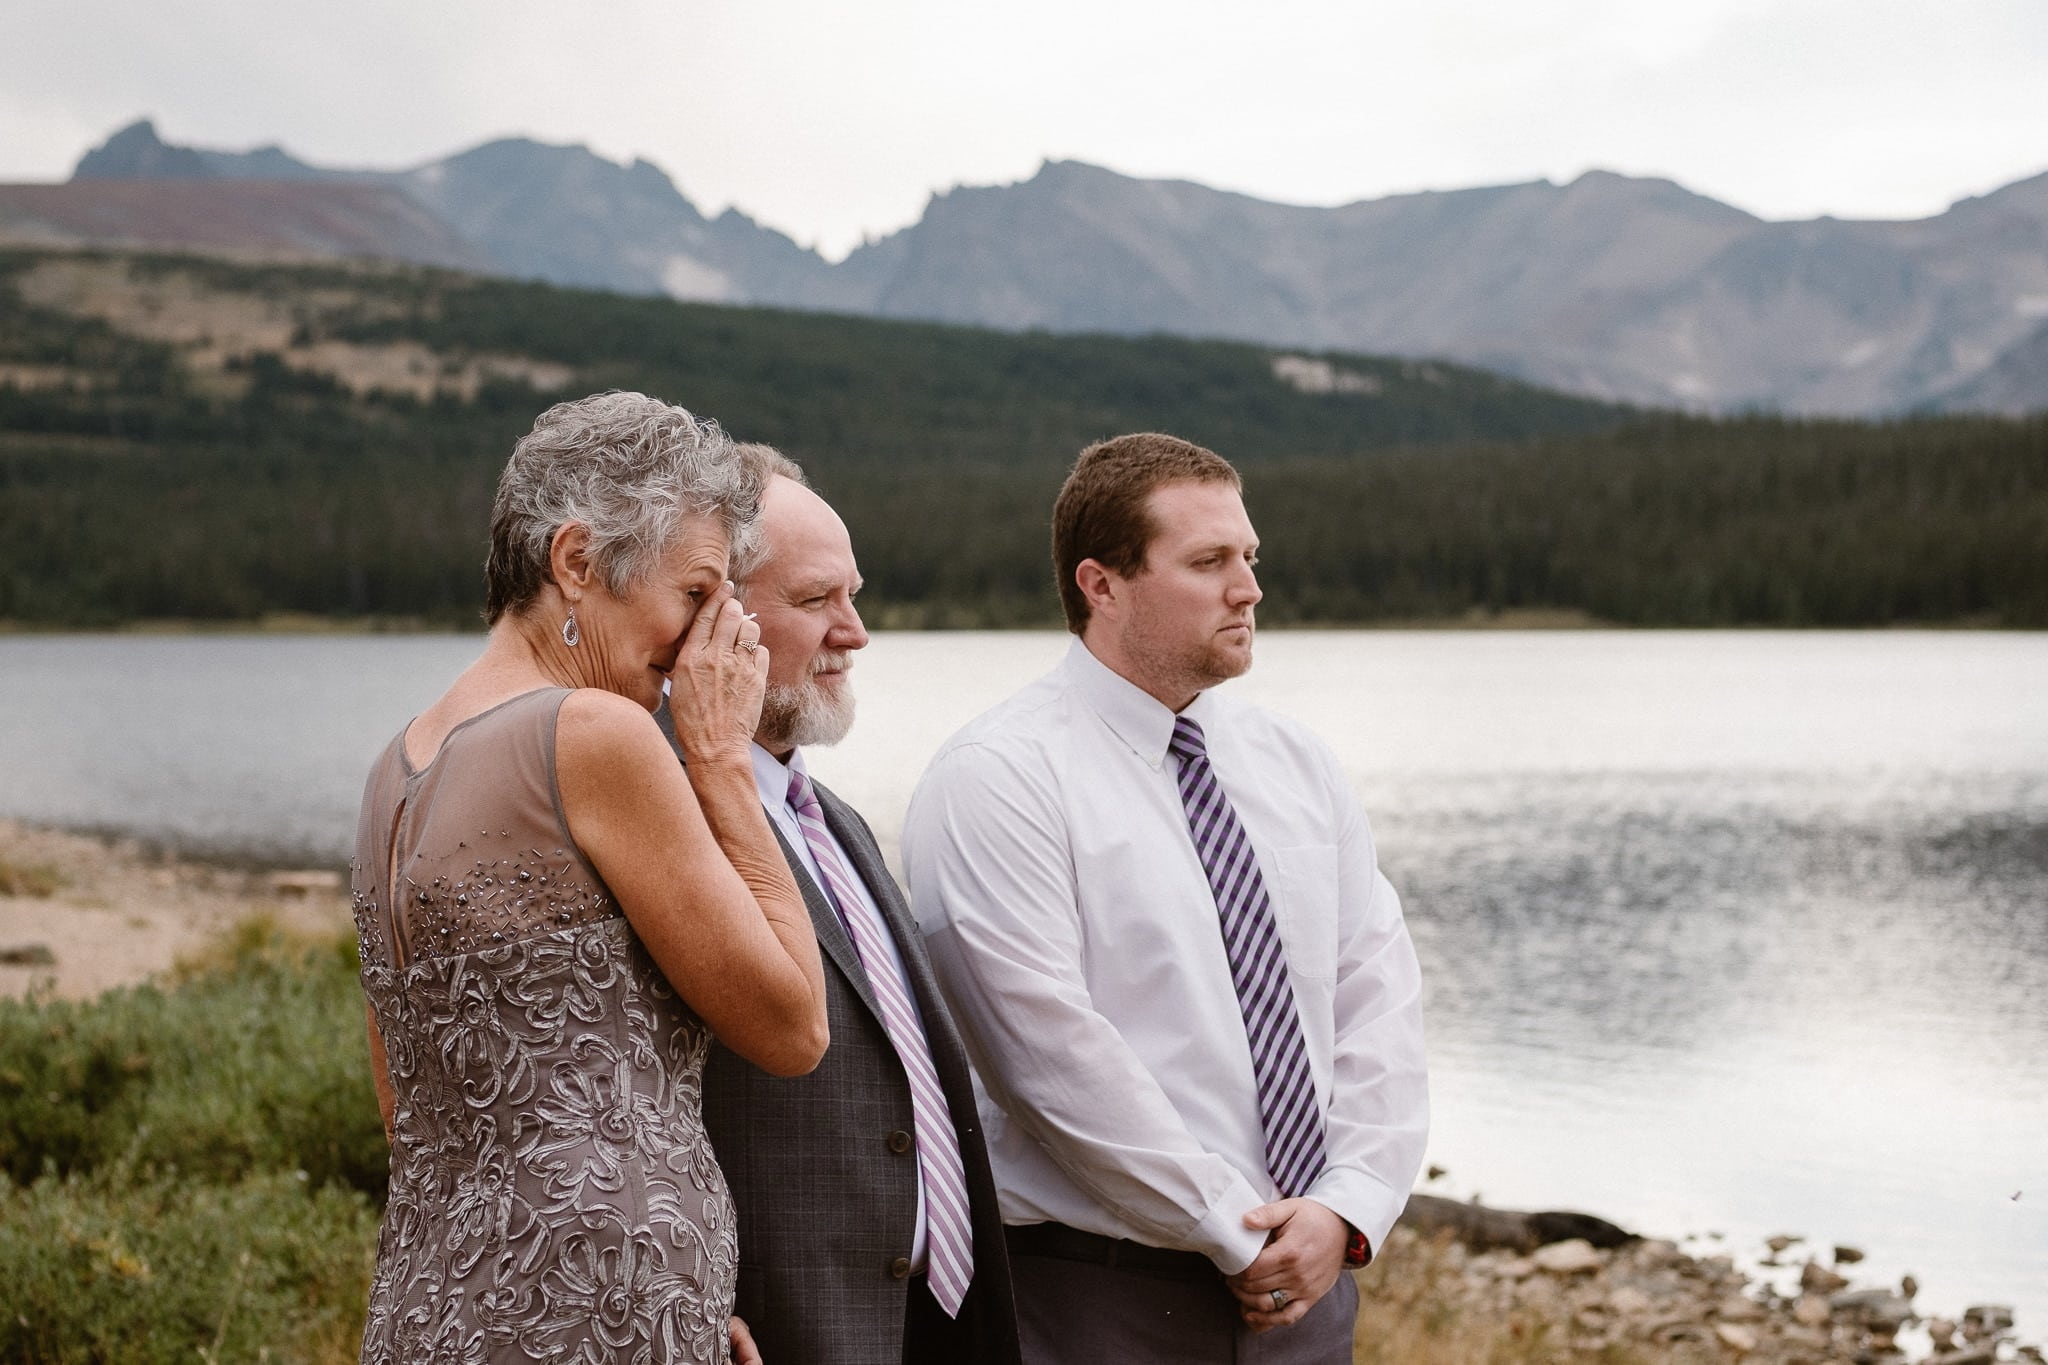 Colorado mountain elopement photographer, alpine lake adventure wedding, Boulder wedding photographer, outdoor ceremony, mother of the groom crying